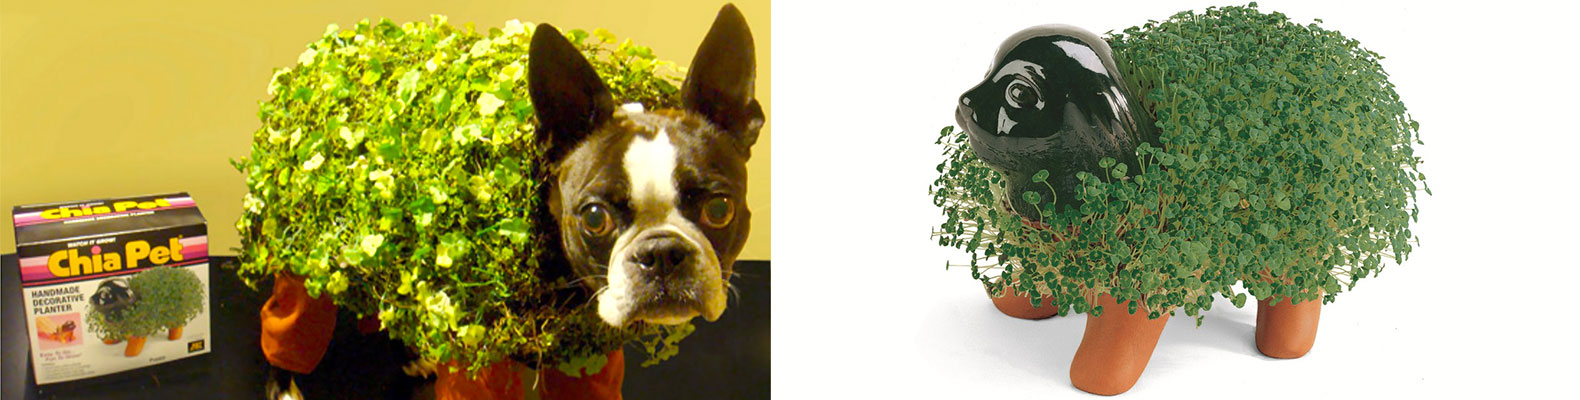 DIY: How to make an adorable Chia Pet dog costume for